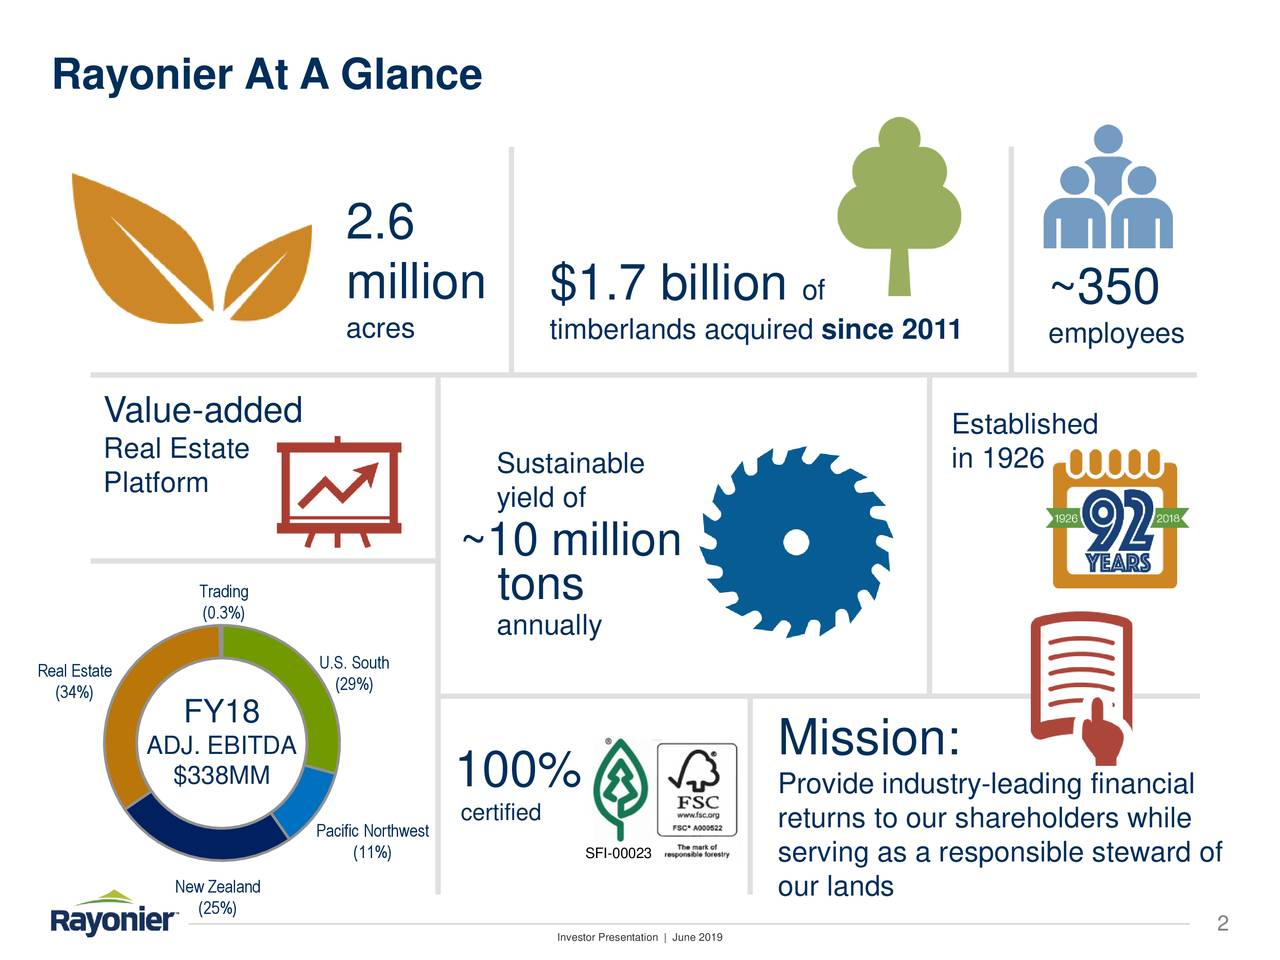 2.6 million $1.7 billion of ~350 acres timberlands acquired since 2011 employees Value-added Established Real Estate Platform Sustainable in 1926 yield of ~10 million Trading tons (0.3%) annually Real Estate U.(29%)uth (34%) FY18 ADJ. EBITDA Mission: $338MM 100% Provide industry-leading financial certified returns to our shareholders while Pac(11%)Northwest SFI-00023 serving as a responsible steward of Ne(25%)land our lands Investor Presentation | June 2019 2